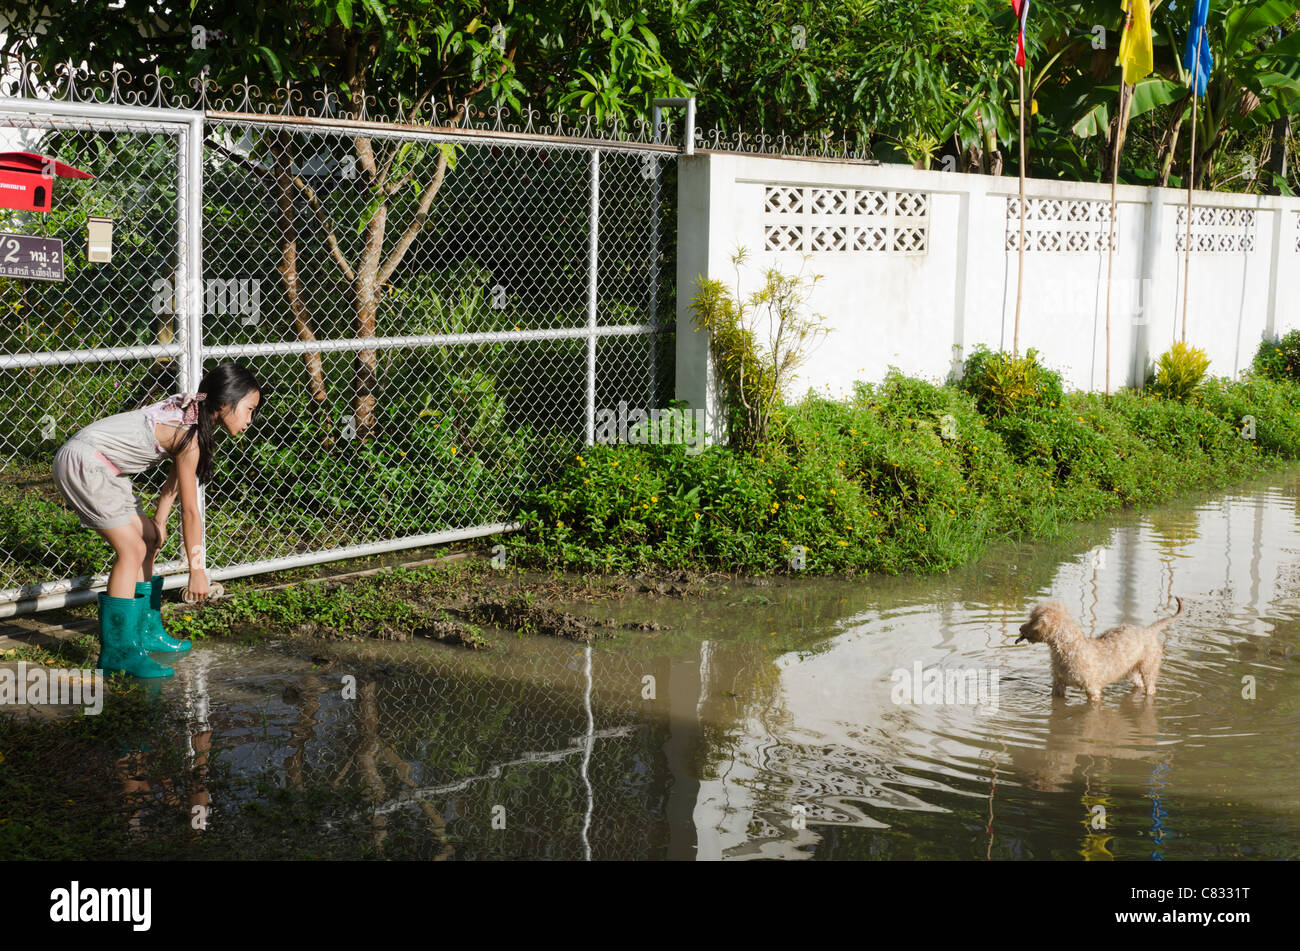 Young girl wearing rubber boots bends over and motions to small dog standing in flooded road by gate of her house - Stock Image